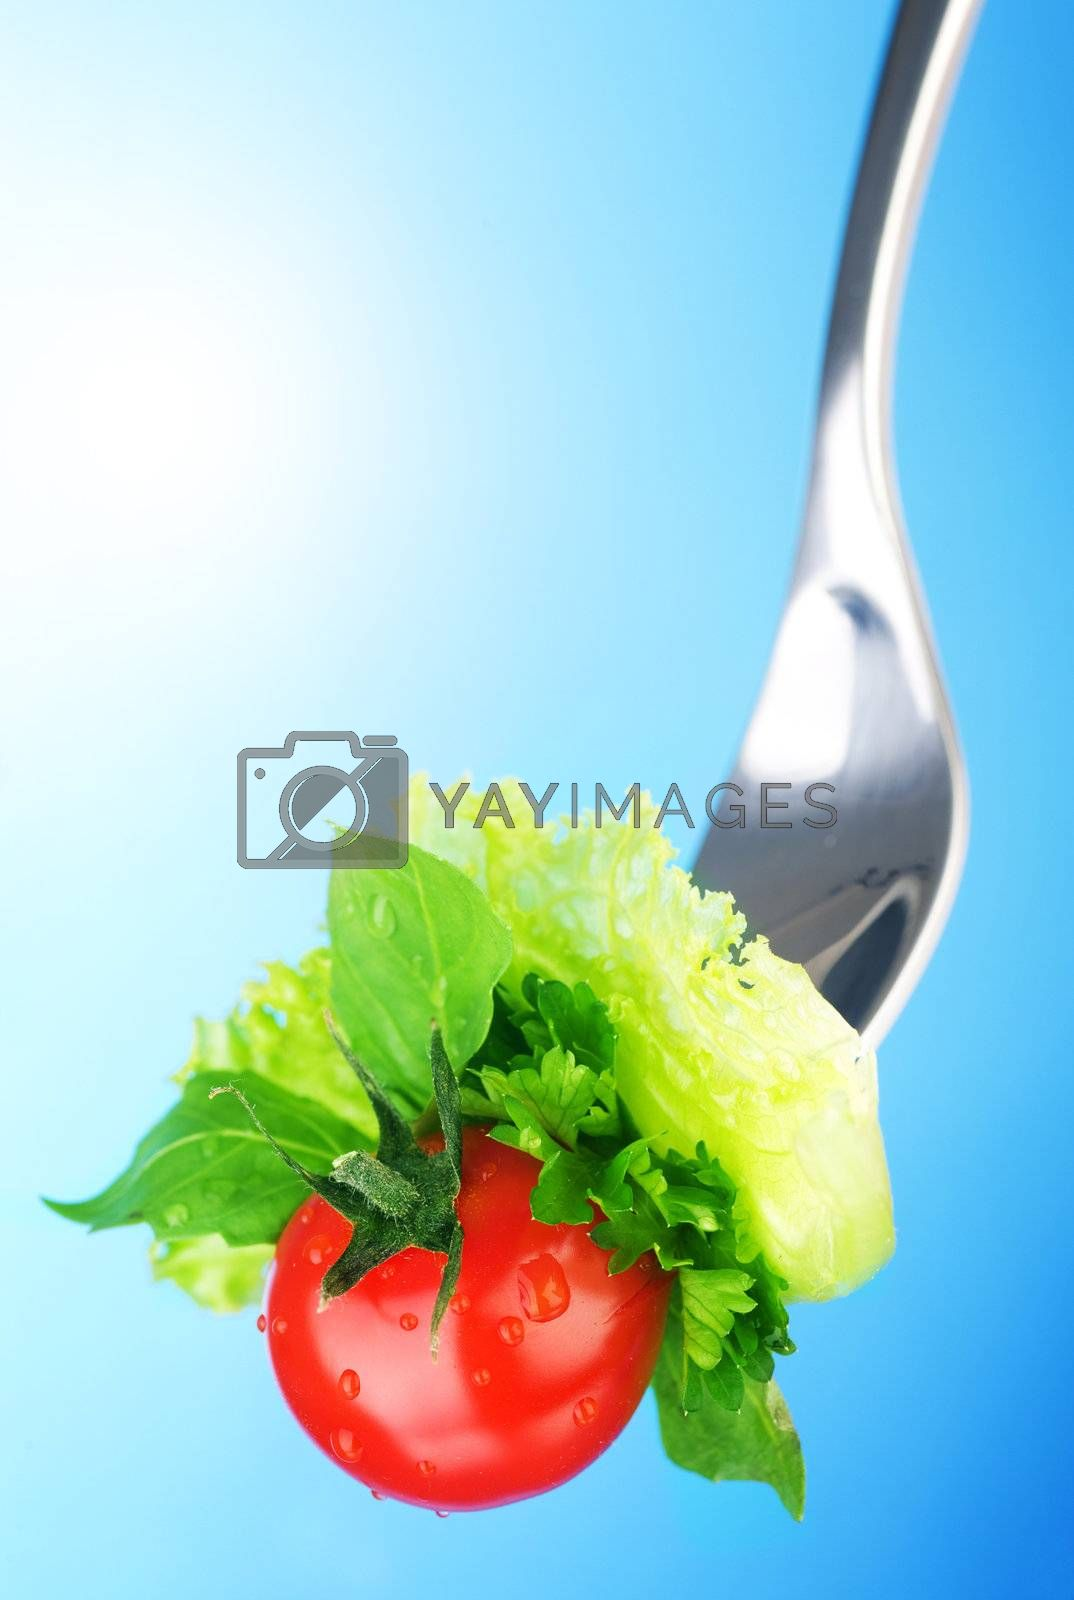 Healthy Eating Concept  by Subbotina Anna